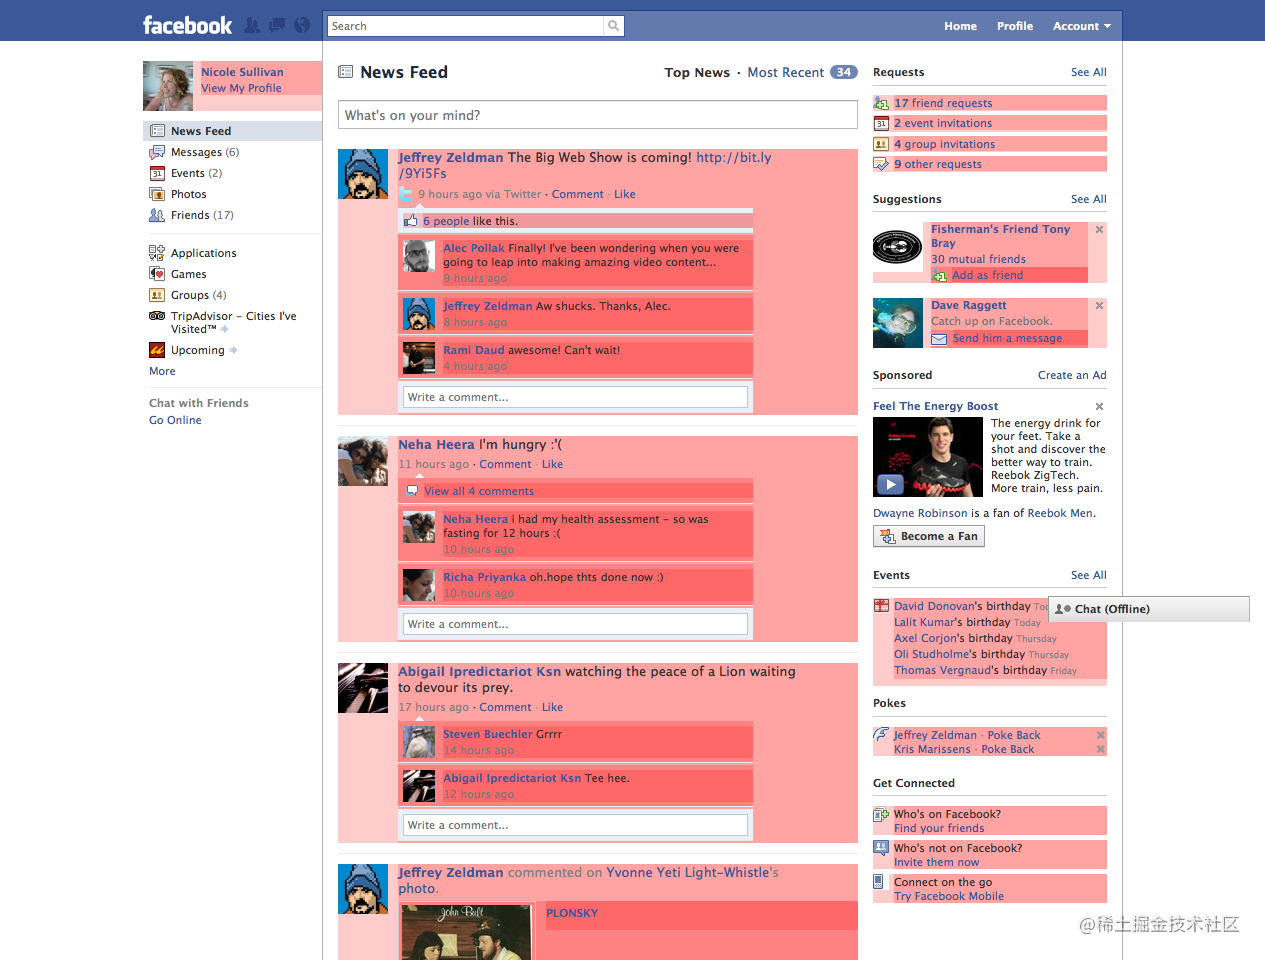 The media object highlighted in red on the facebook homepage